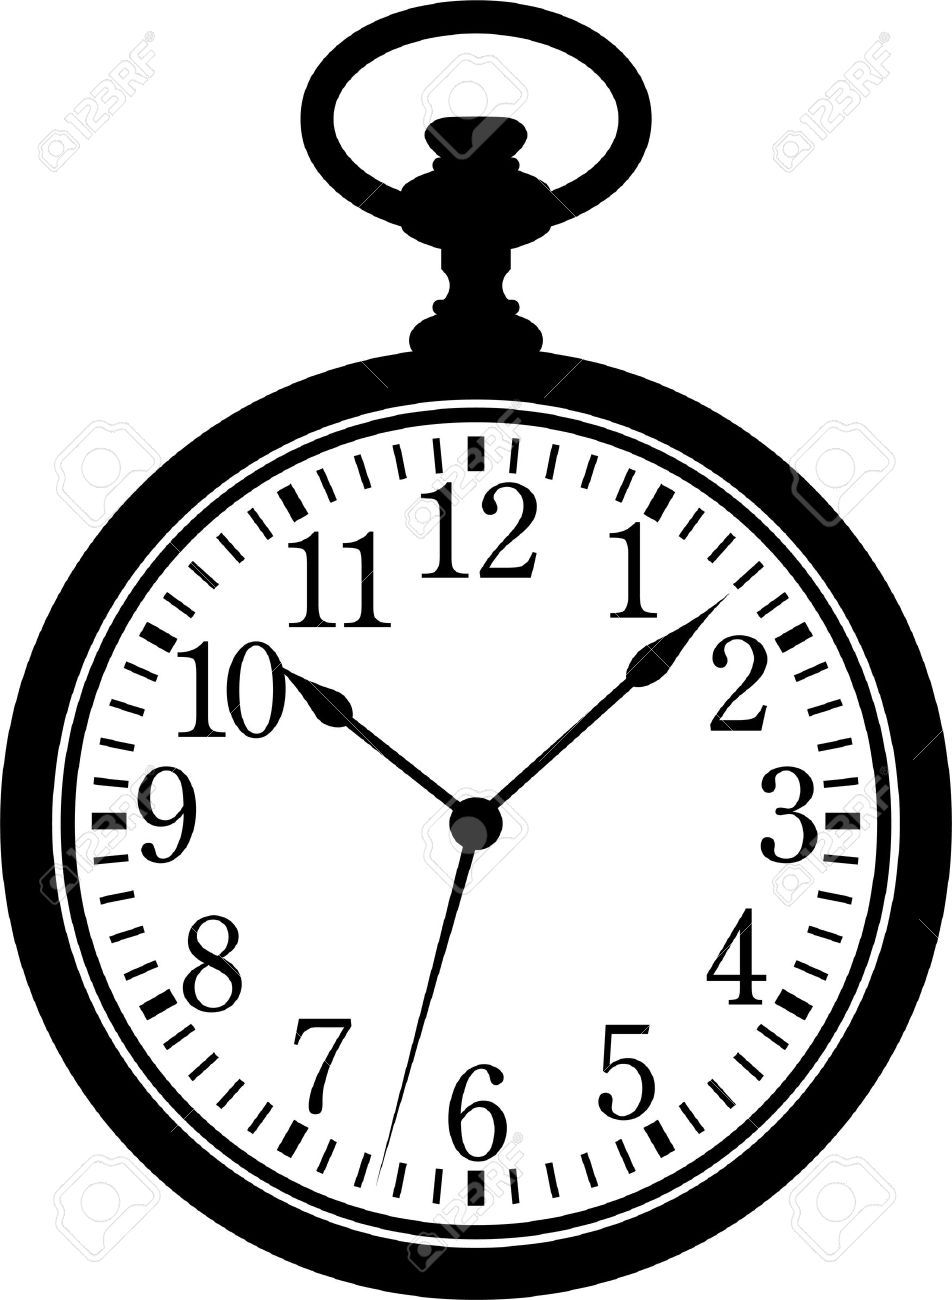 white rabbit clock template.